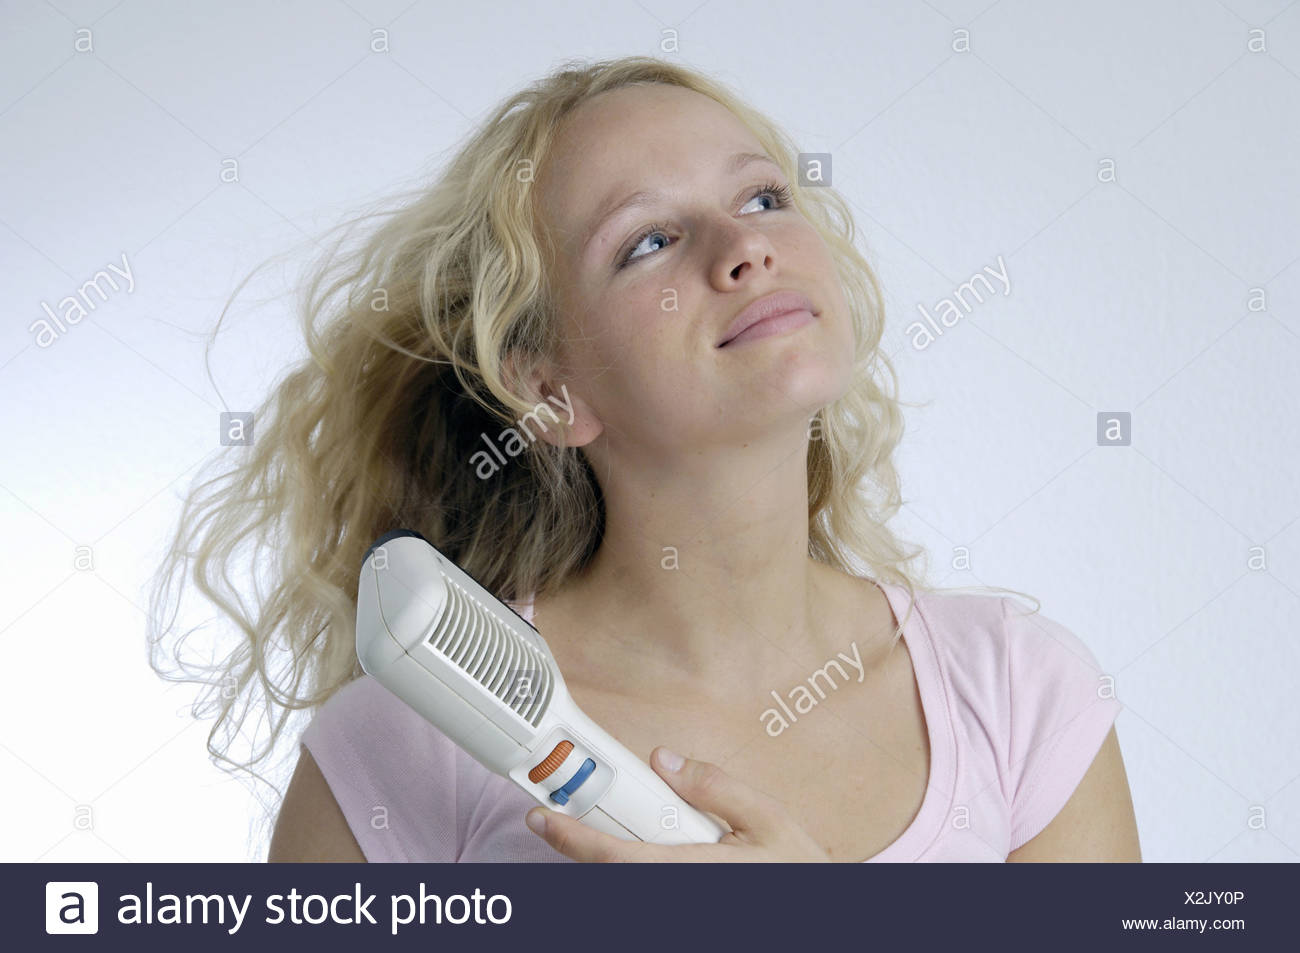 hair dry hairdrier hairdryer young woman young blond portrait studio inside - Stock Image